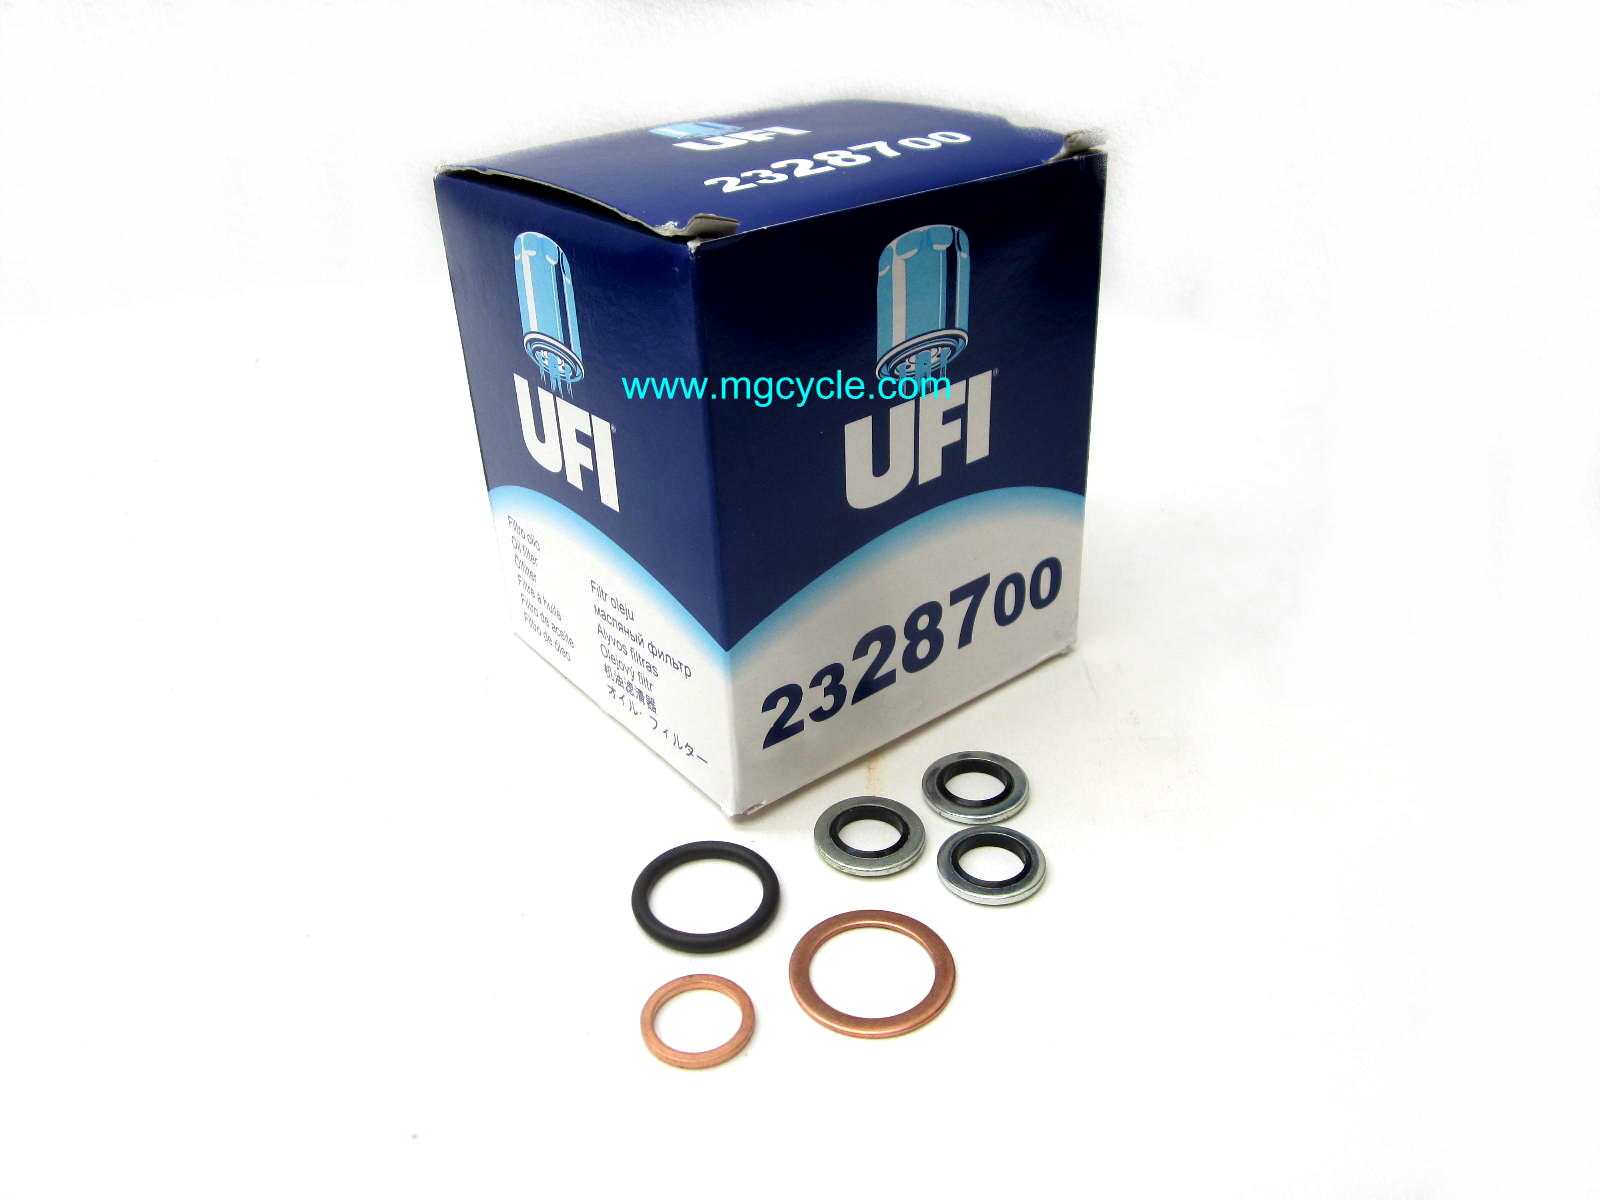 UFI fluid change kit for CARC series except 15 & later Griso 8V